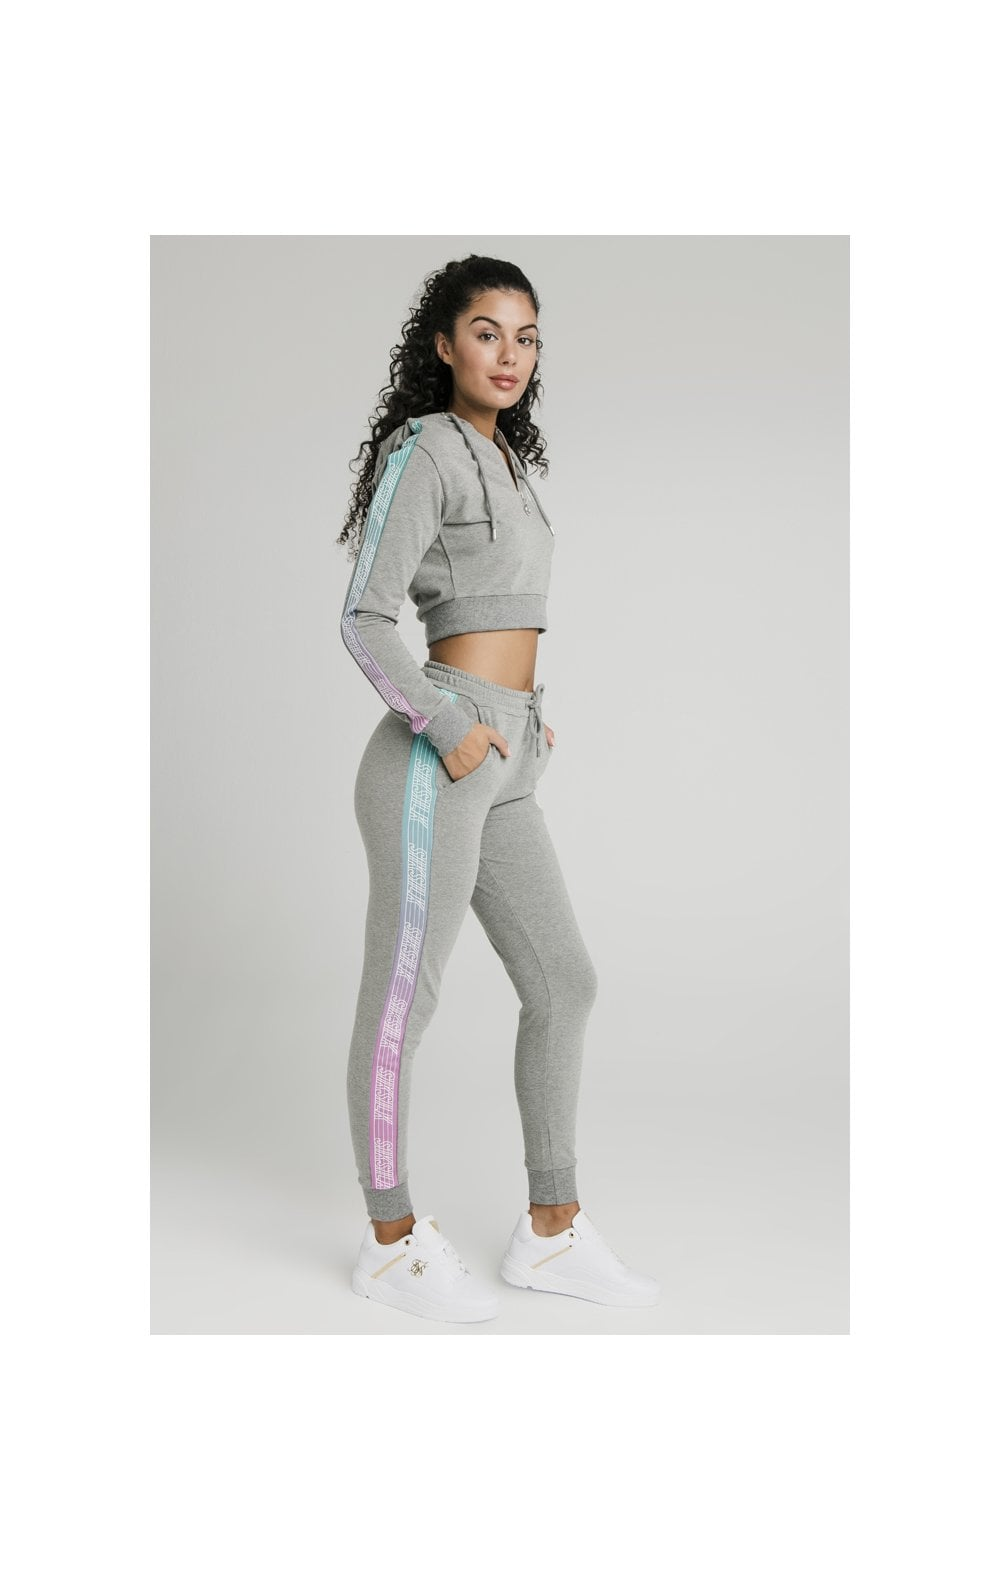 Load image into Gallery viewer, SikSilk Fade Runner Track Top - Grey Marl (4)